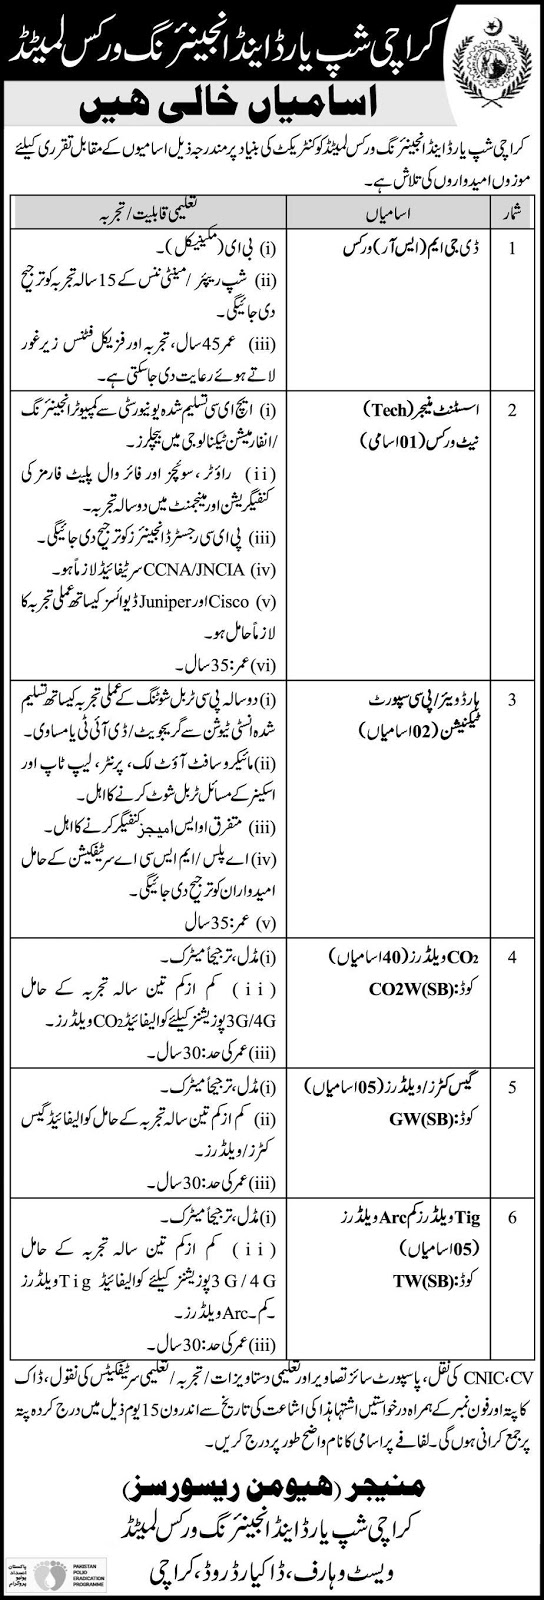 Karachi Shipyard and Engineering Works Ltd Jobs 2020 Latest